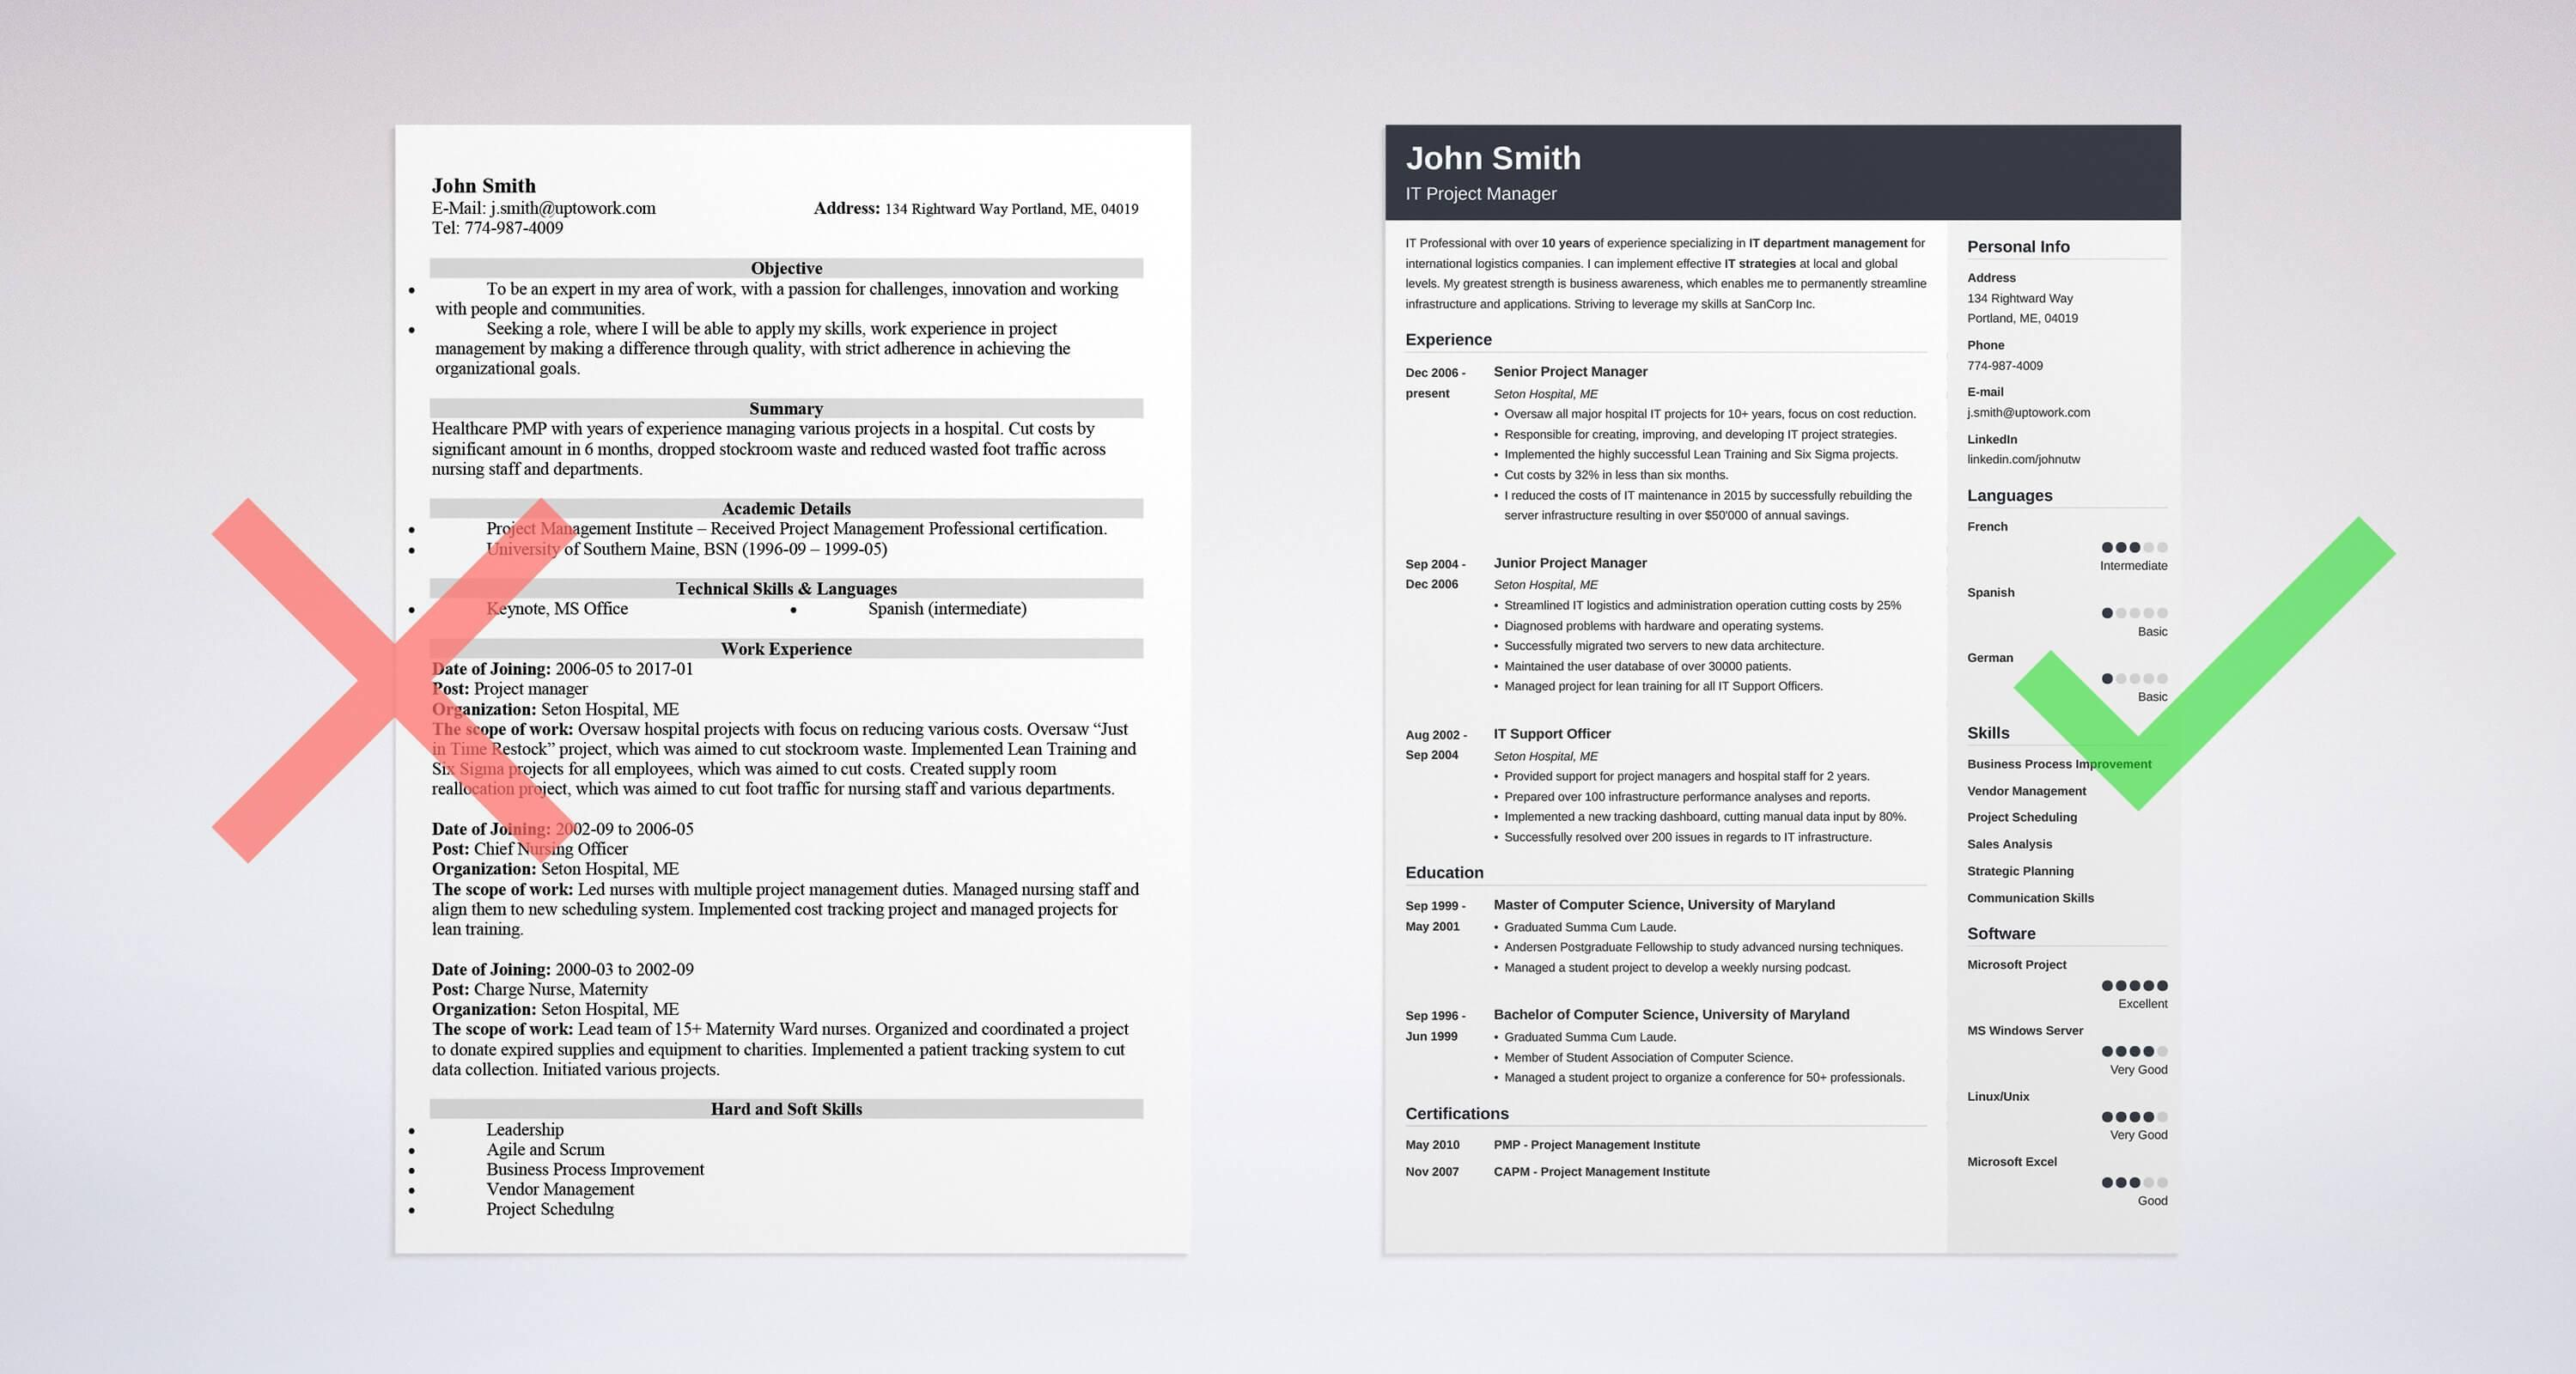 How to Make a Resume for a Job [Professional Writing Guide